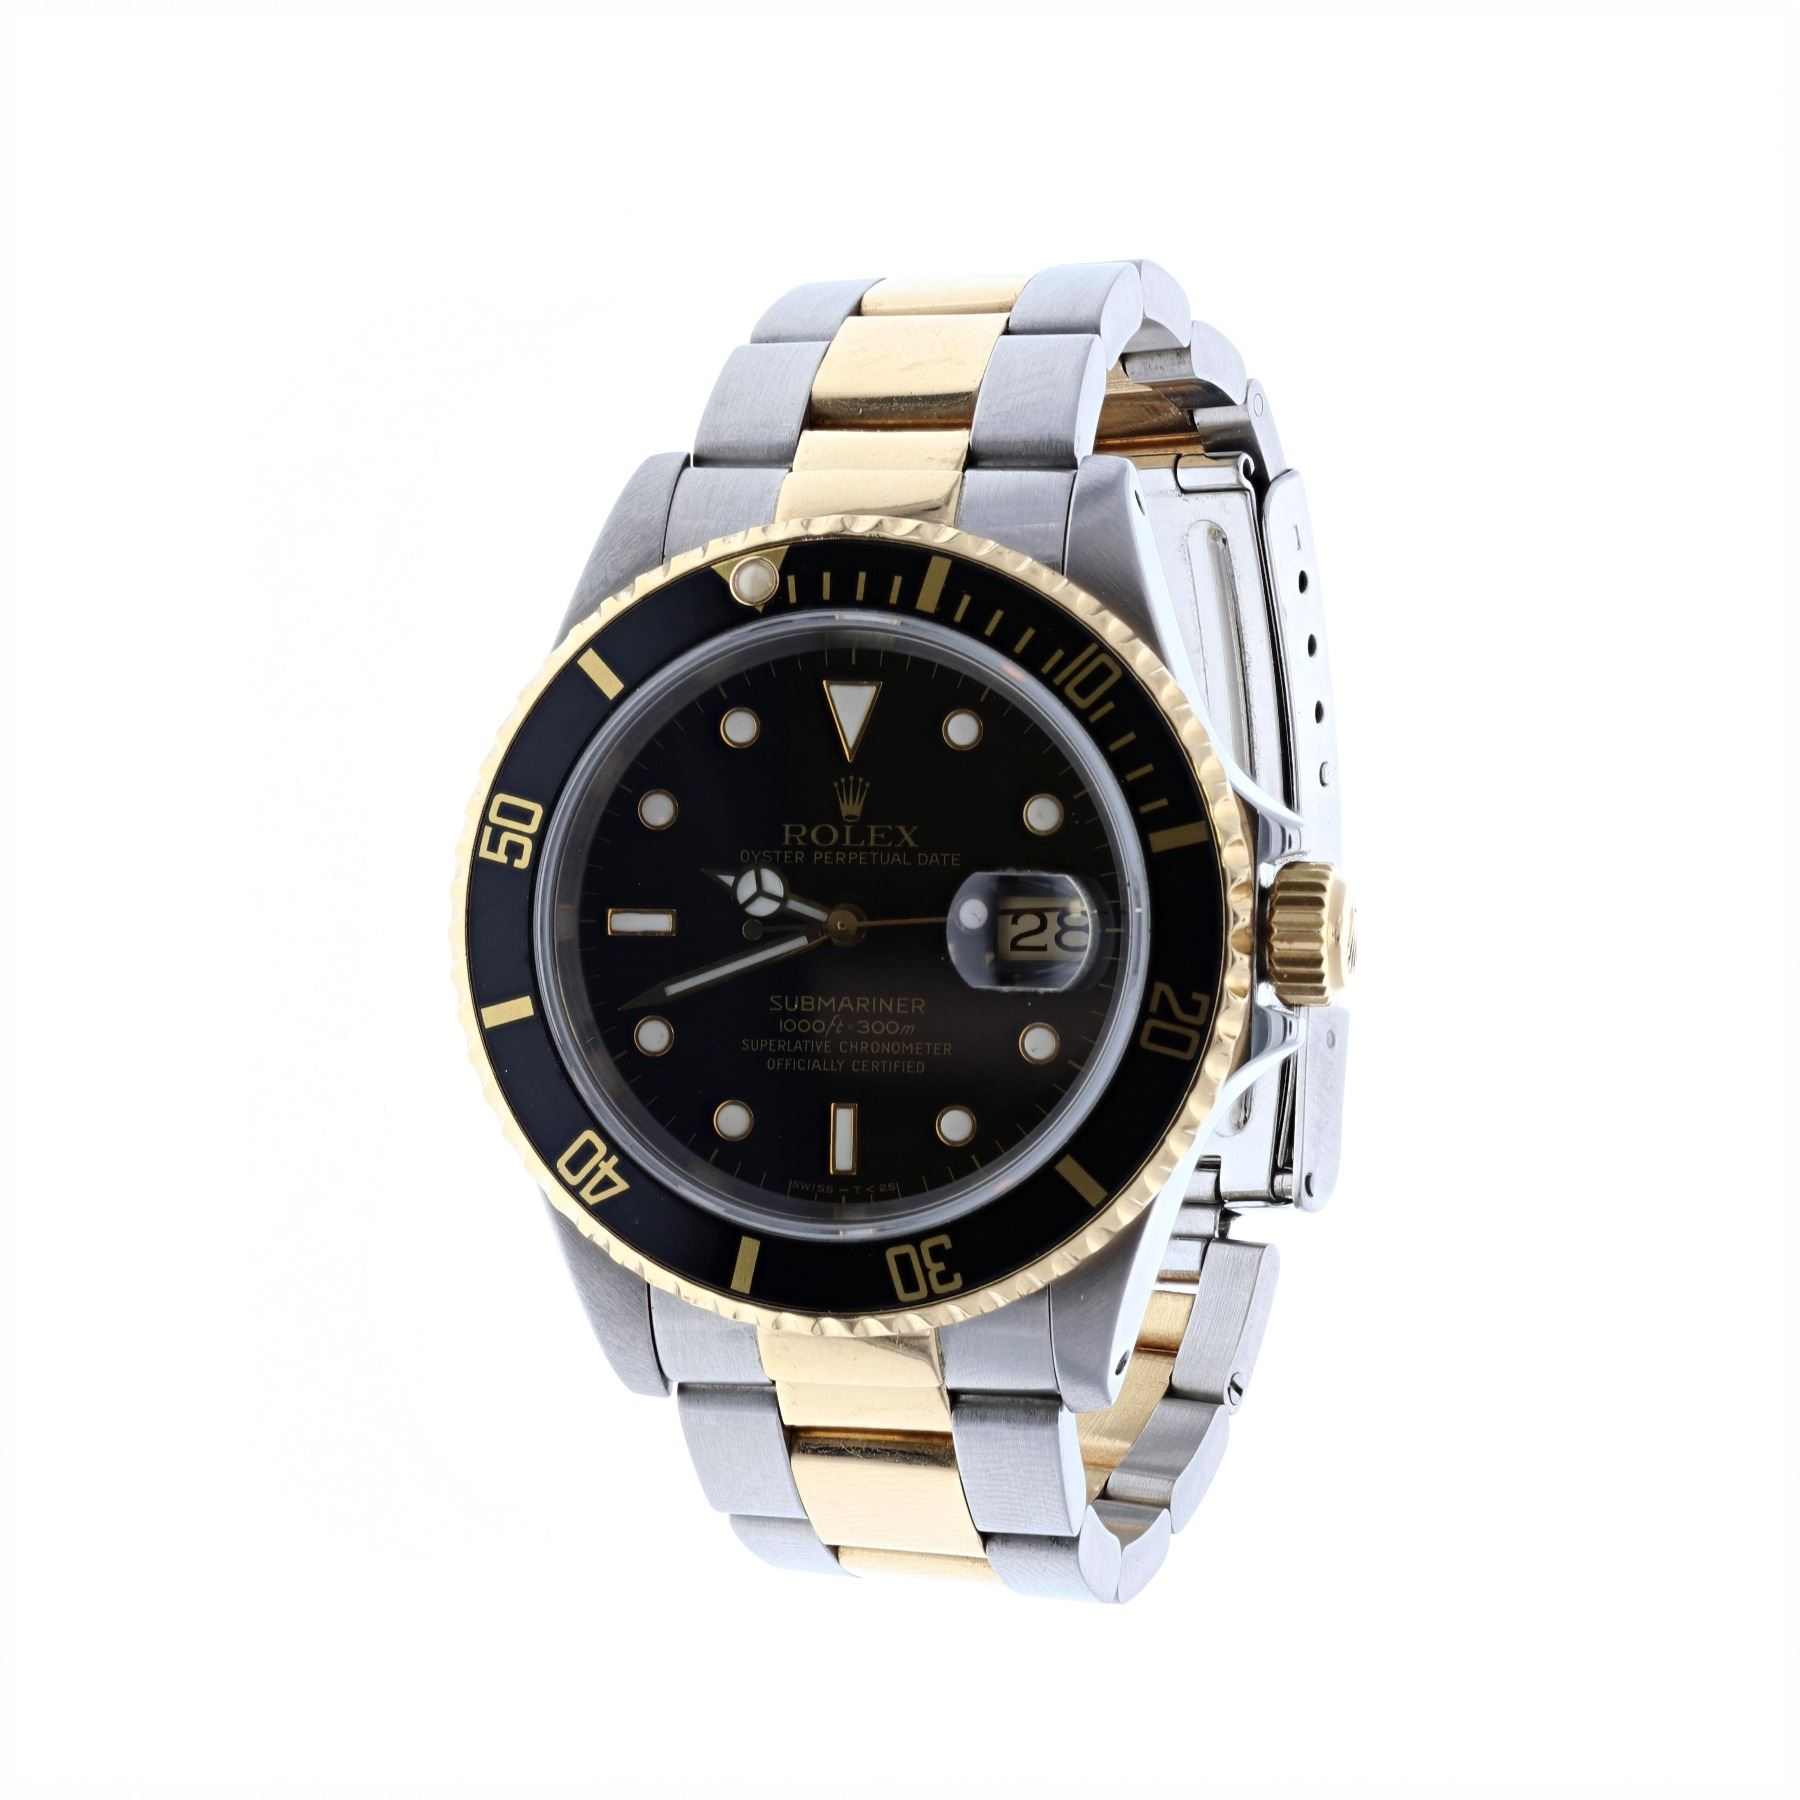 09ca07fdc12 ... Rolex Oyster Perpetual. Loading zoom · Image 1   WATCH   1  Stainless  steel and 18 karat yellow gold gents ...